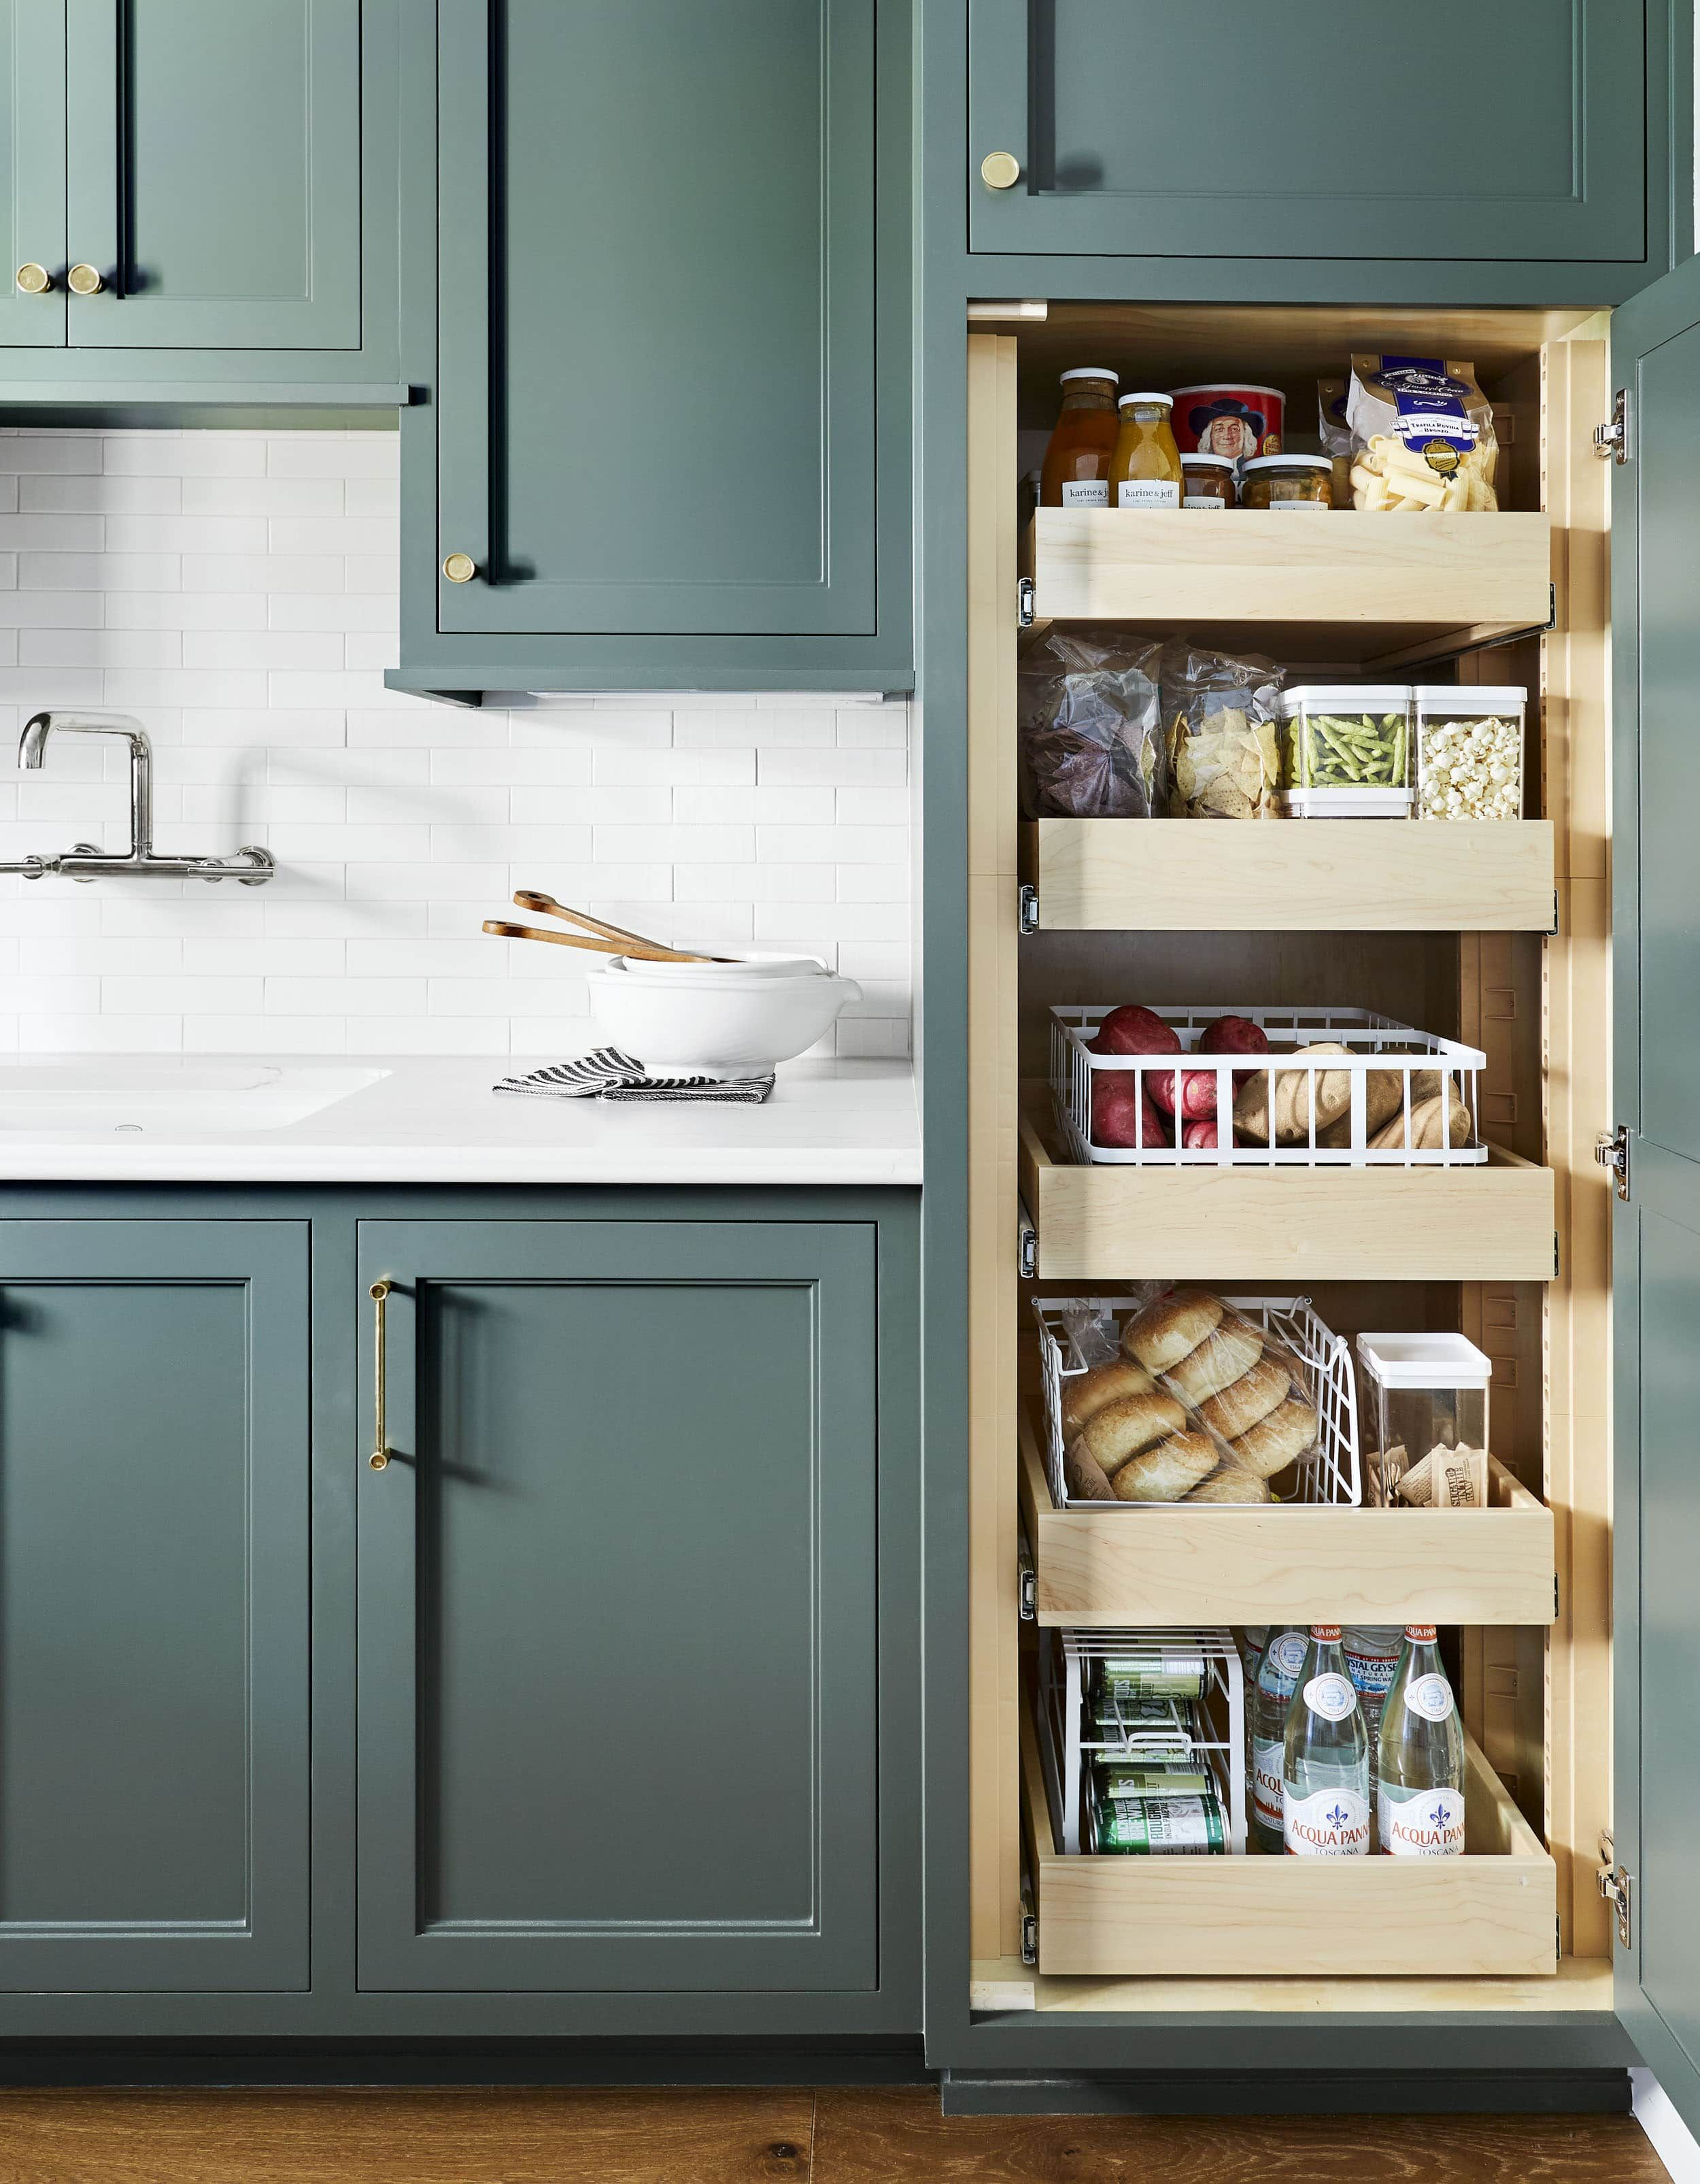 8 Steps To Building A Smart Organized Pantry Mudroom Emily Henderson In 2020 Kitchen Pantry Design Pantry Design Pantry Cabinet